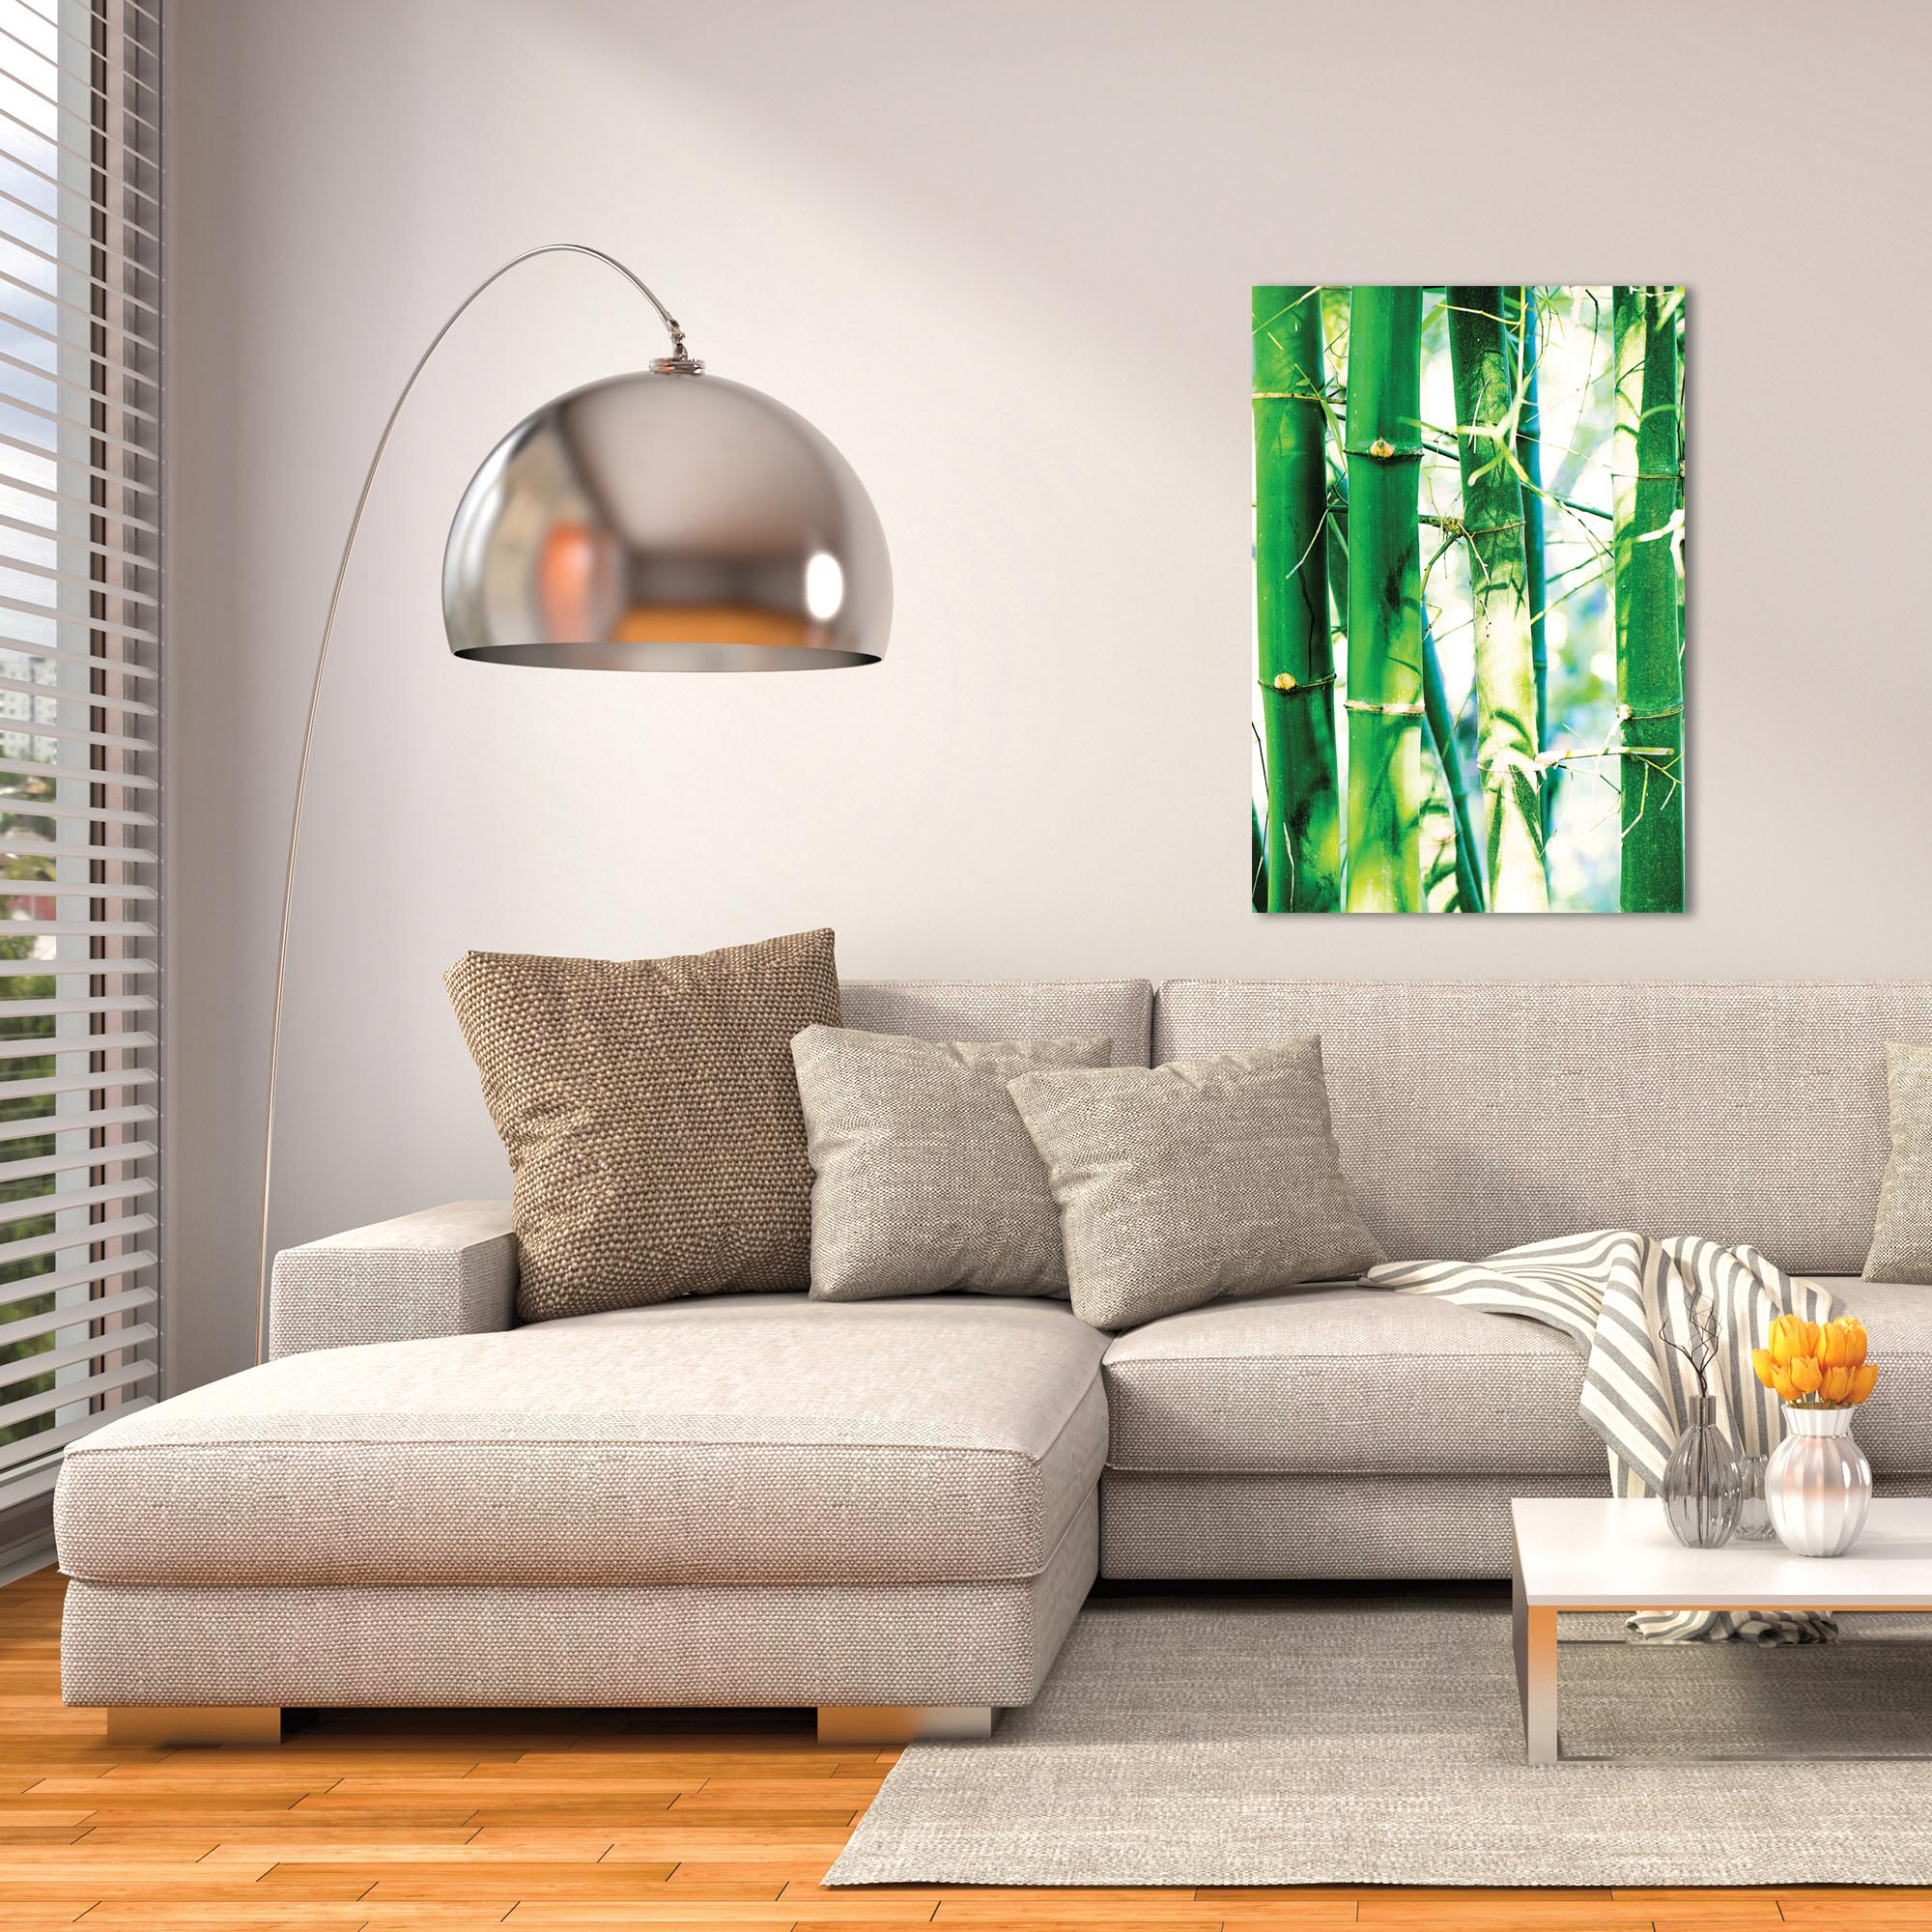 Asian Wall Art 'Bamboo Heights' - Bamboo Decor on Metal or Plexiglass - Lifestyle View